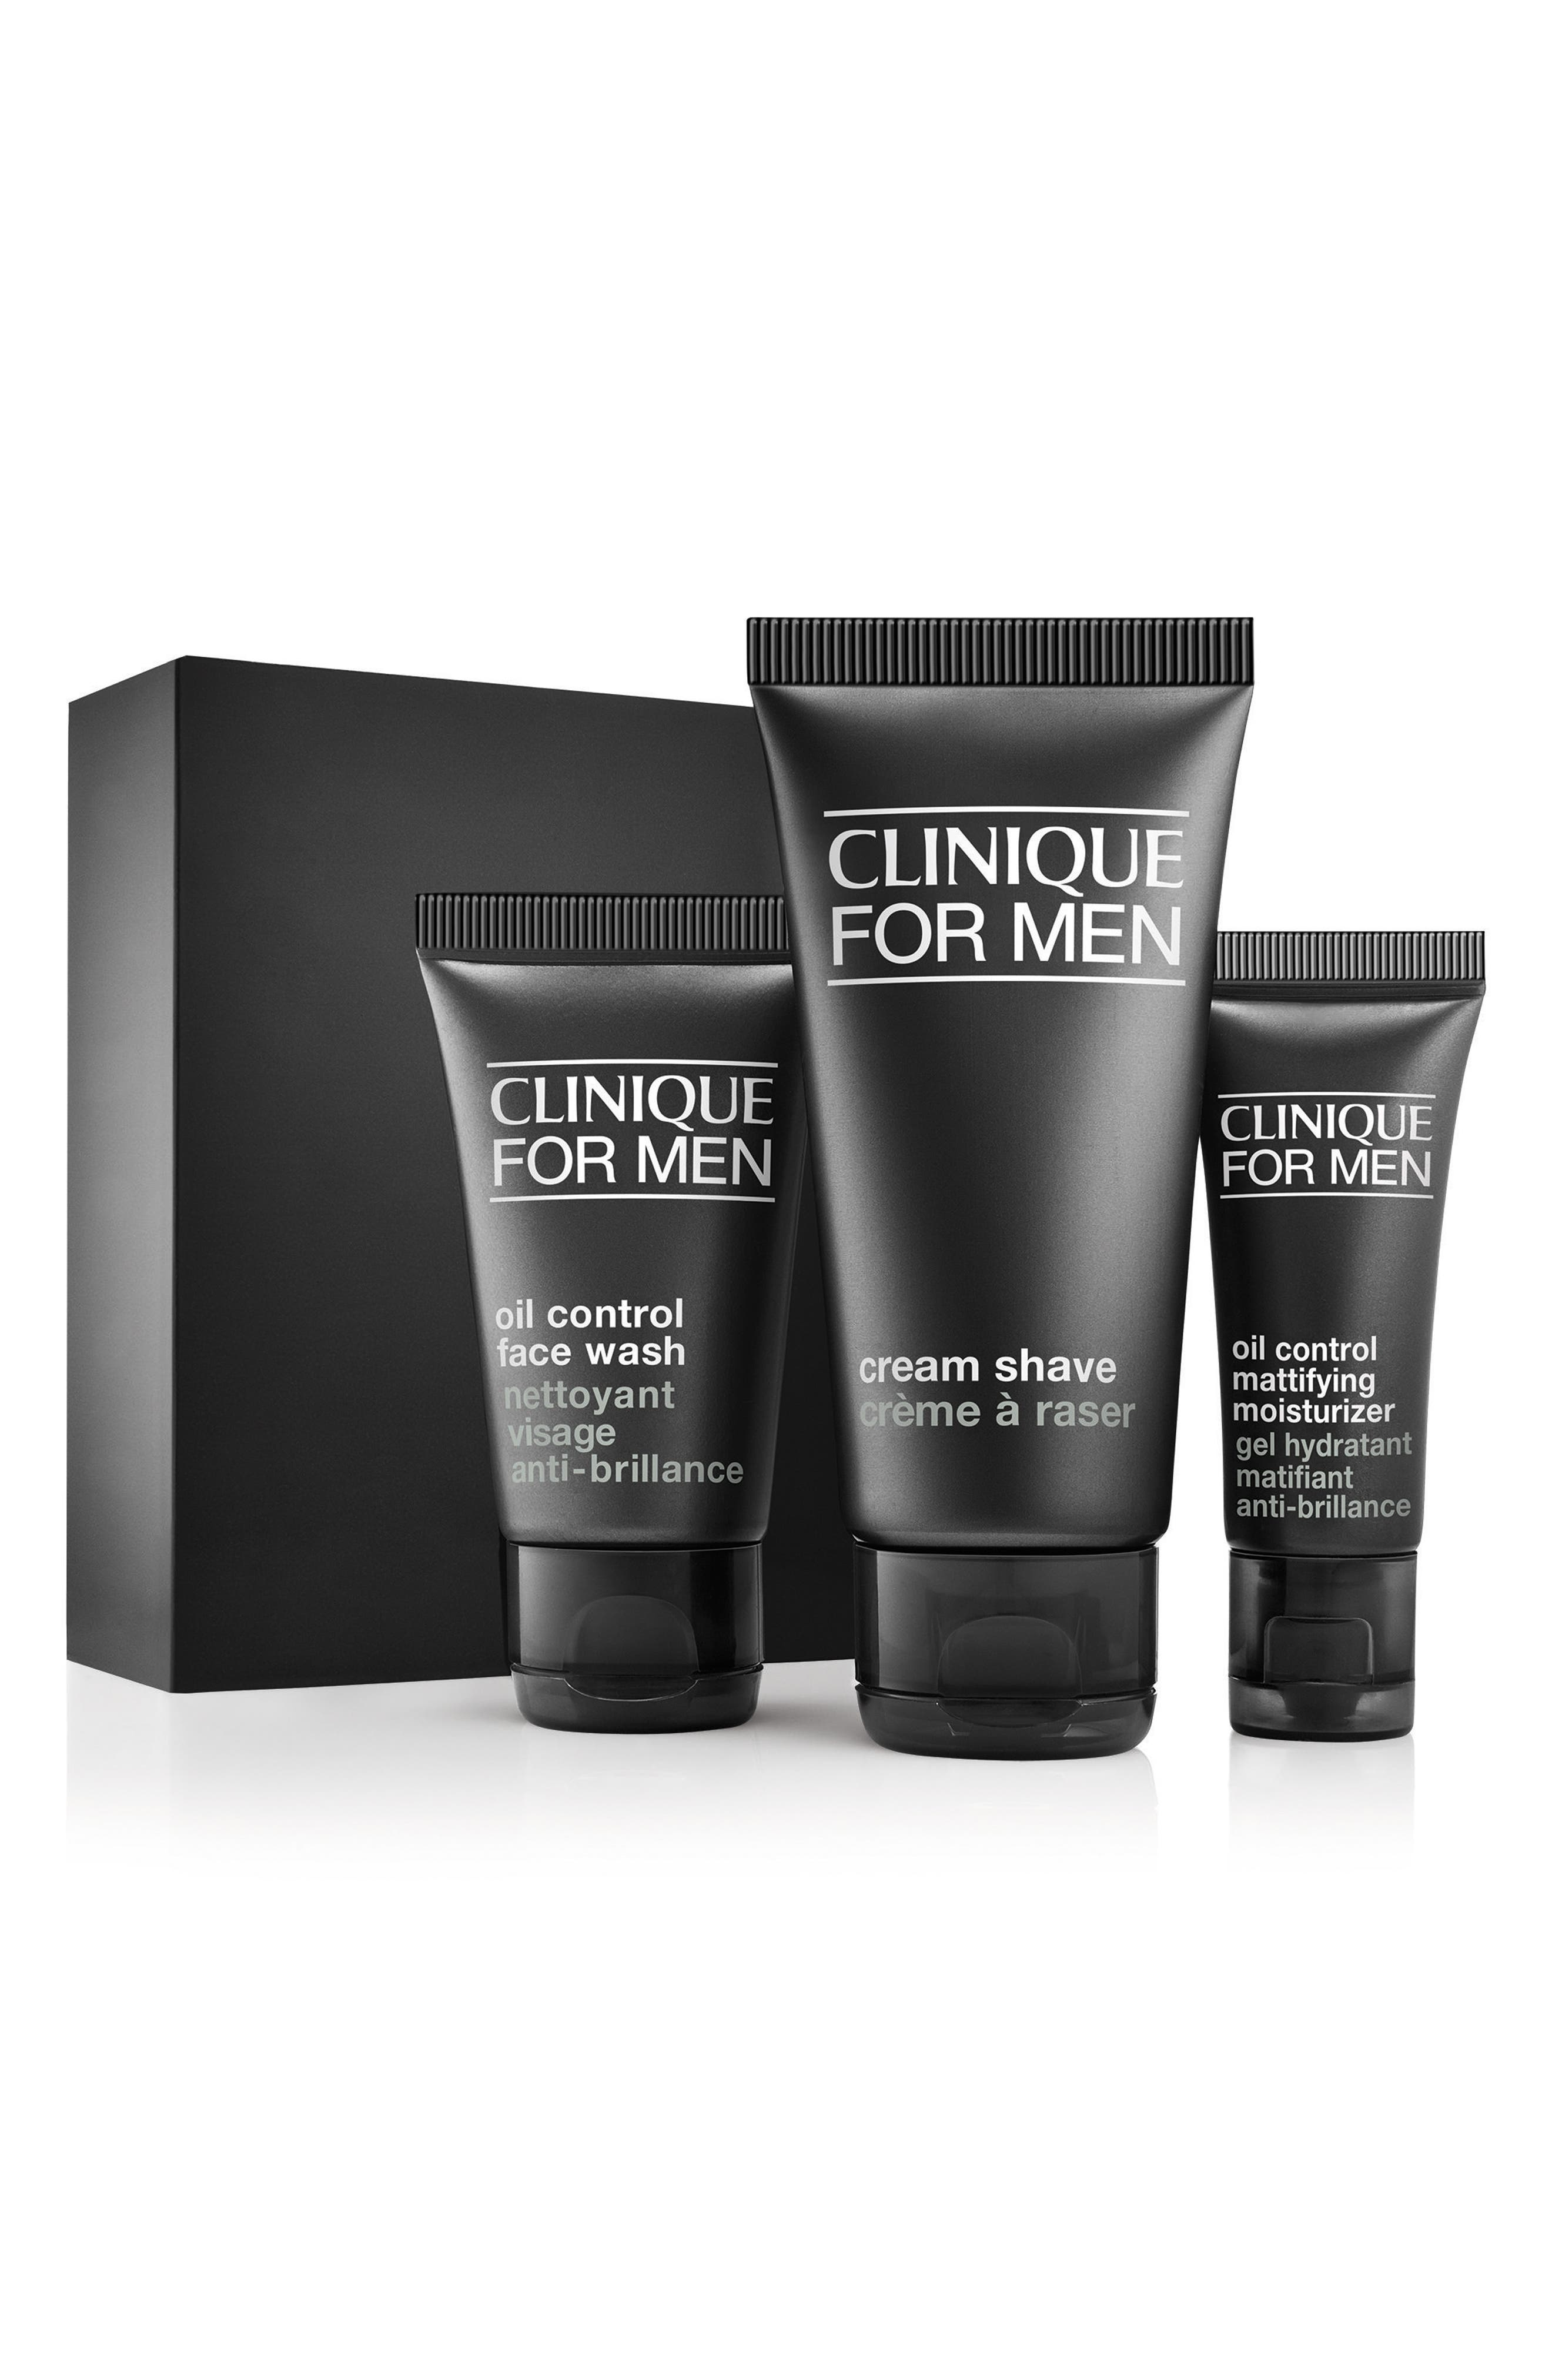 Clinique for Men Starter Kit for Combination Oily to Oily Skin Types